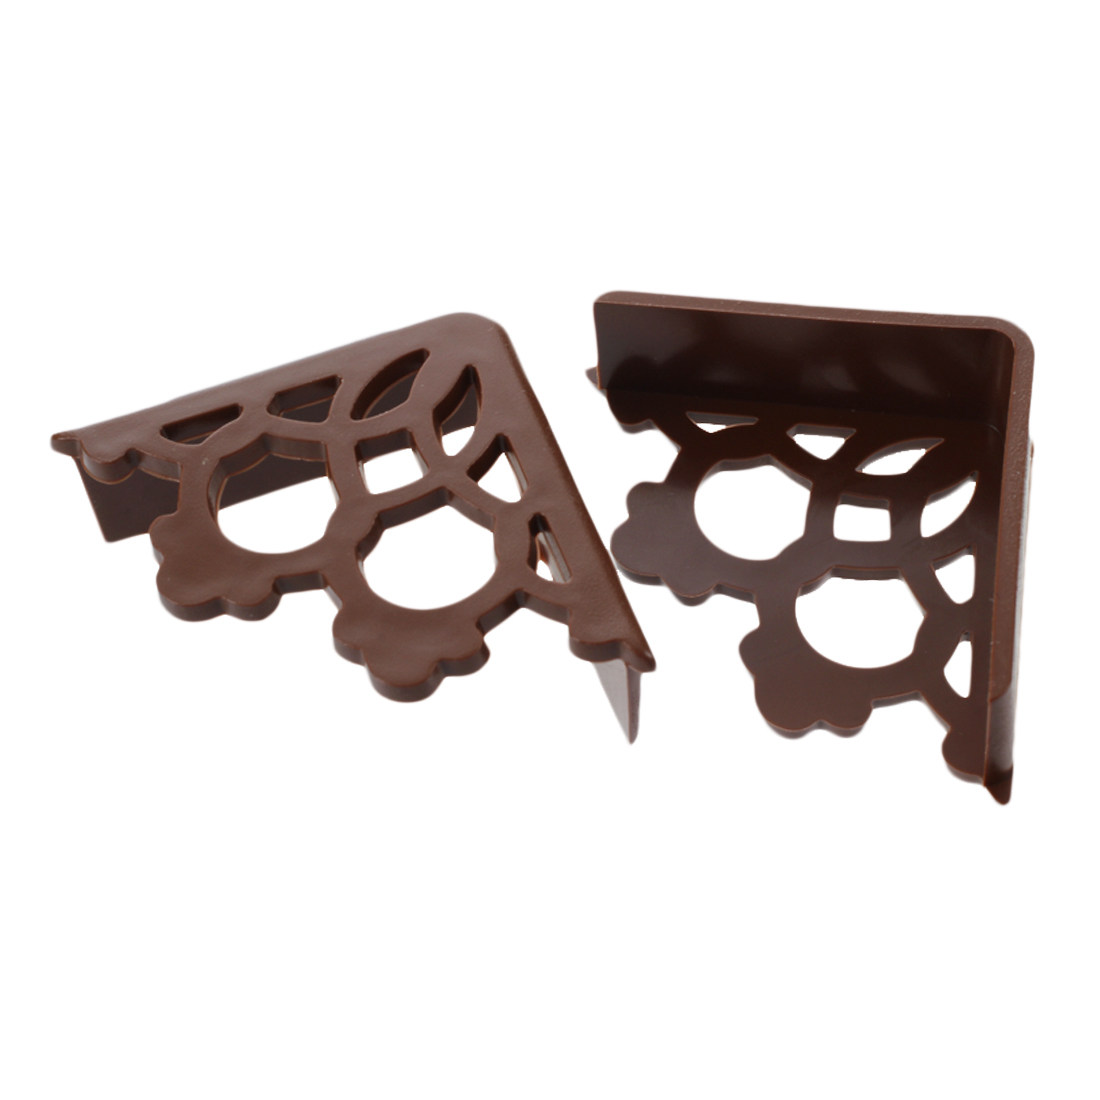 4 Pcs. Furniture Rubber Hollowed Design Table Desk Corner Upholstery, Coffee